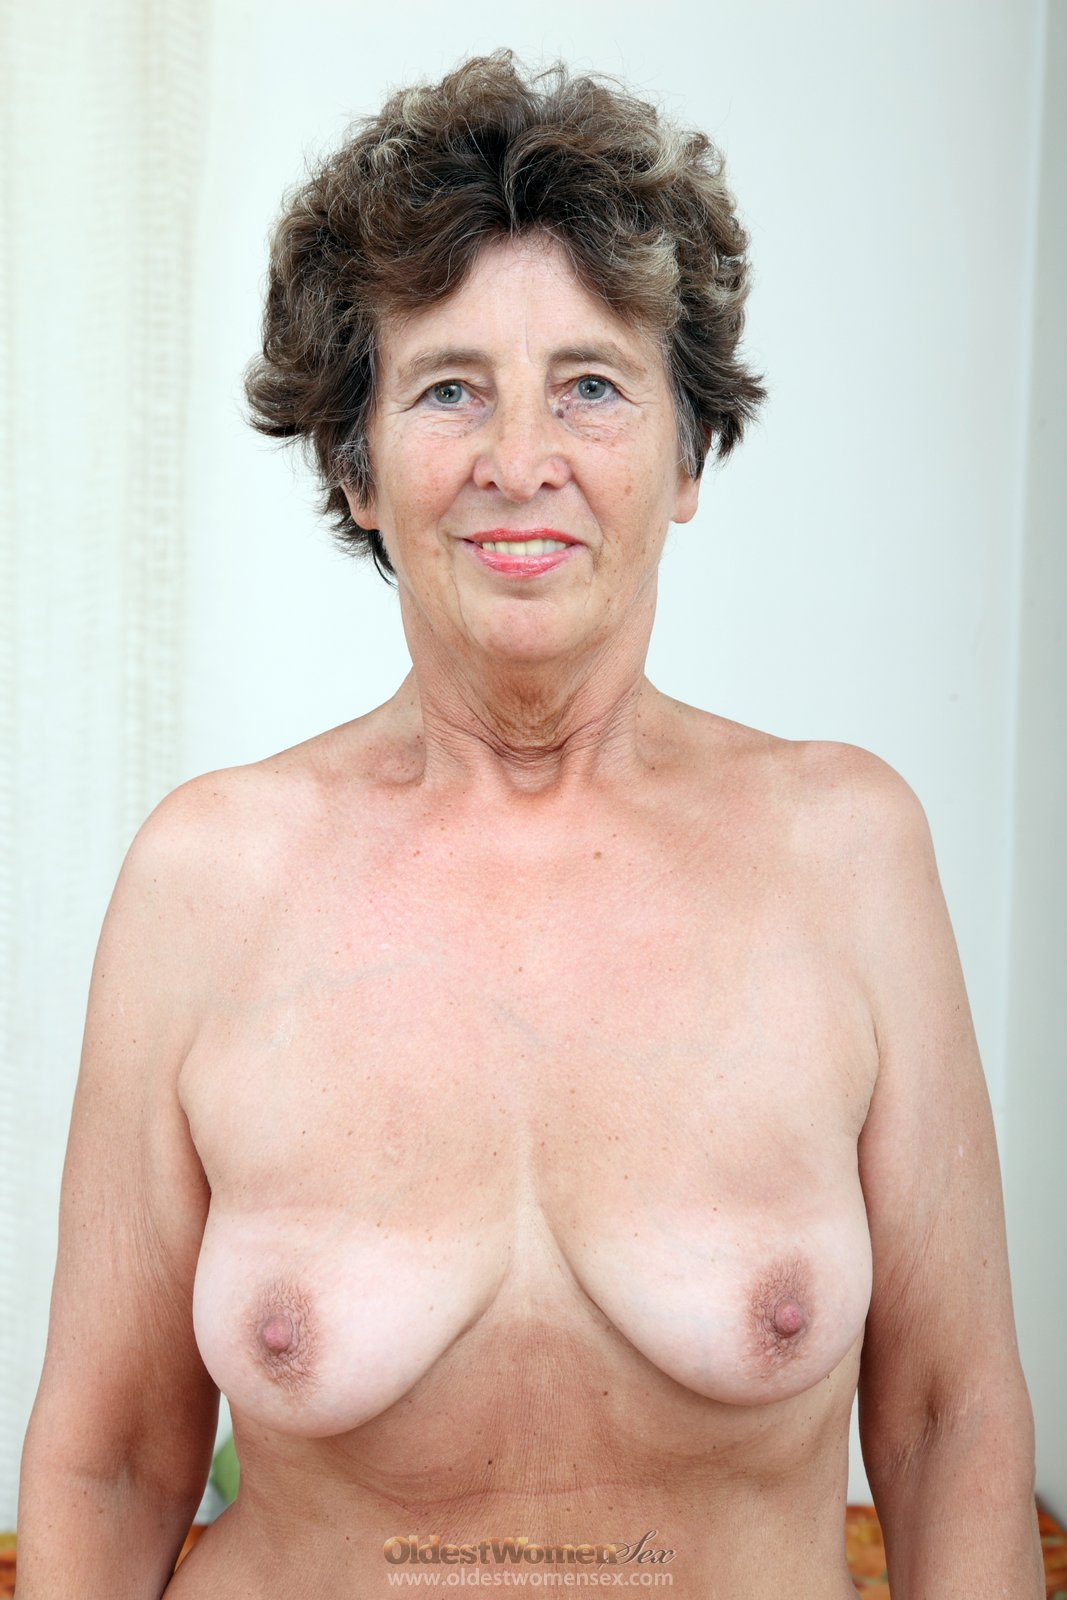 very old woman porn amateur porn galleries lucky shooting daa was